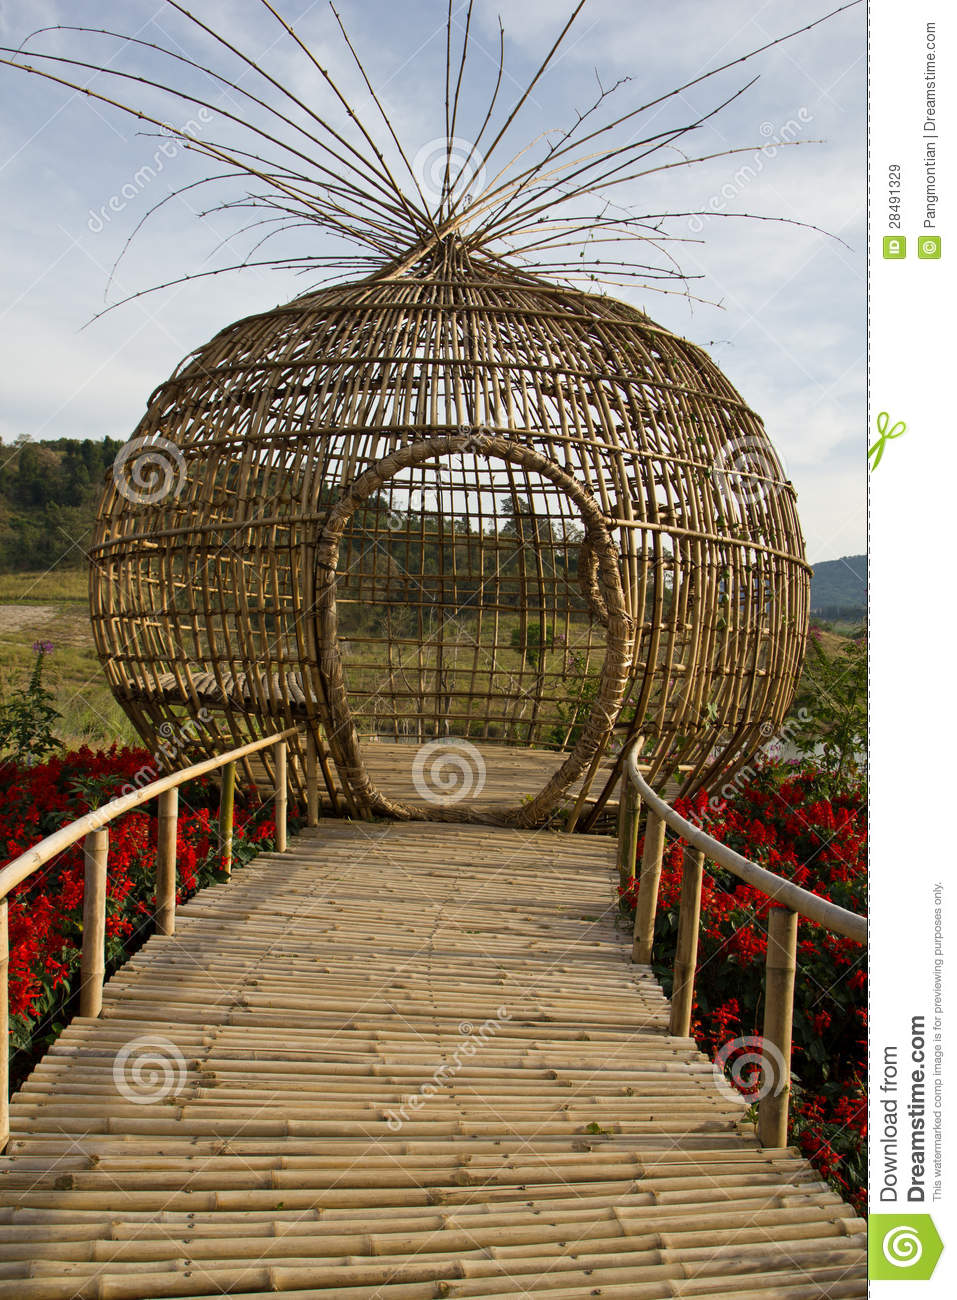 Bamboo sculpture stock image. Image of abstract, grunge ...